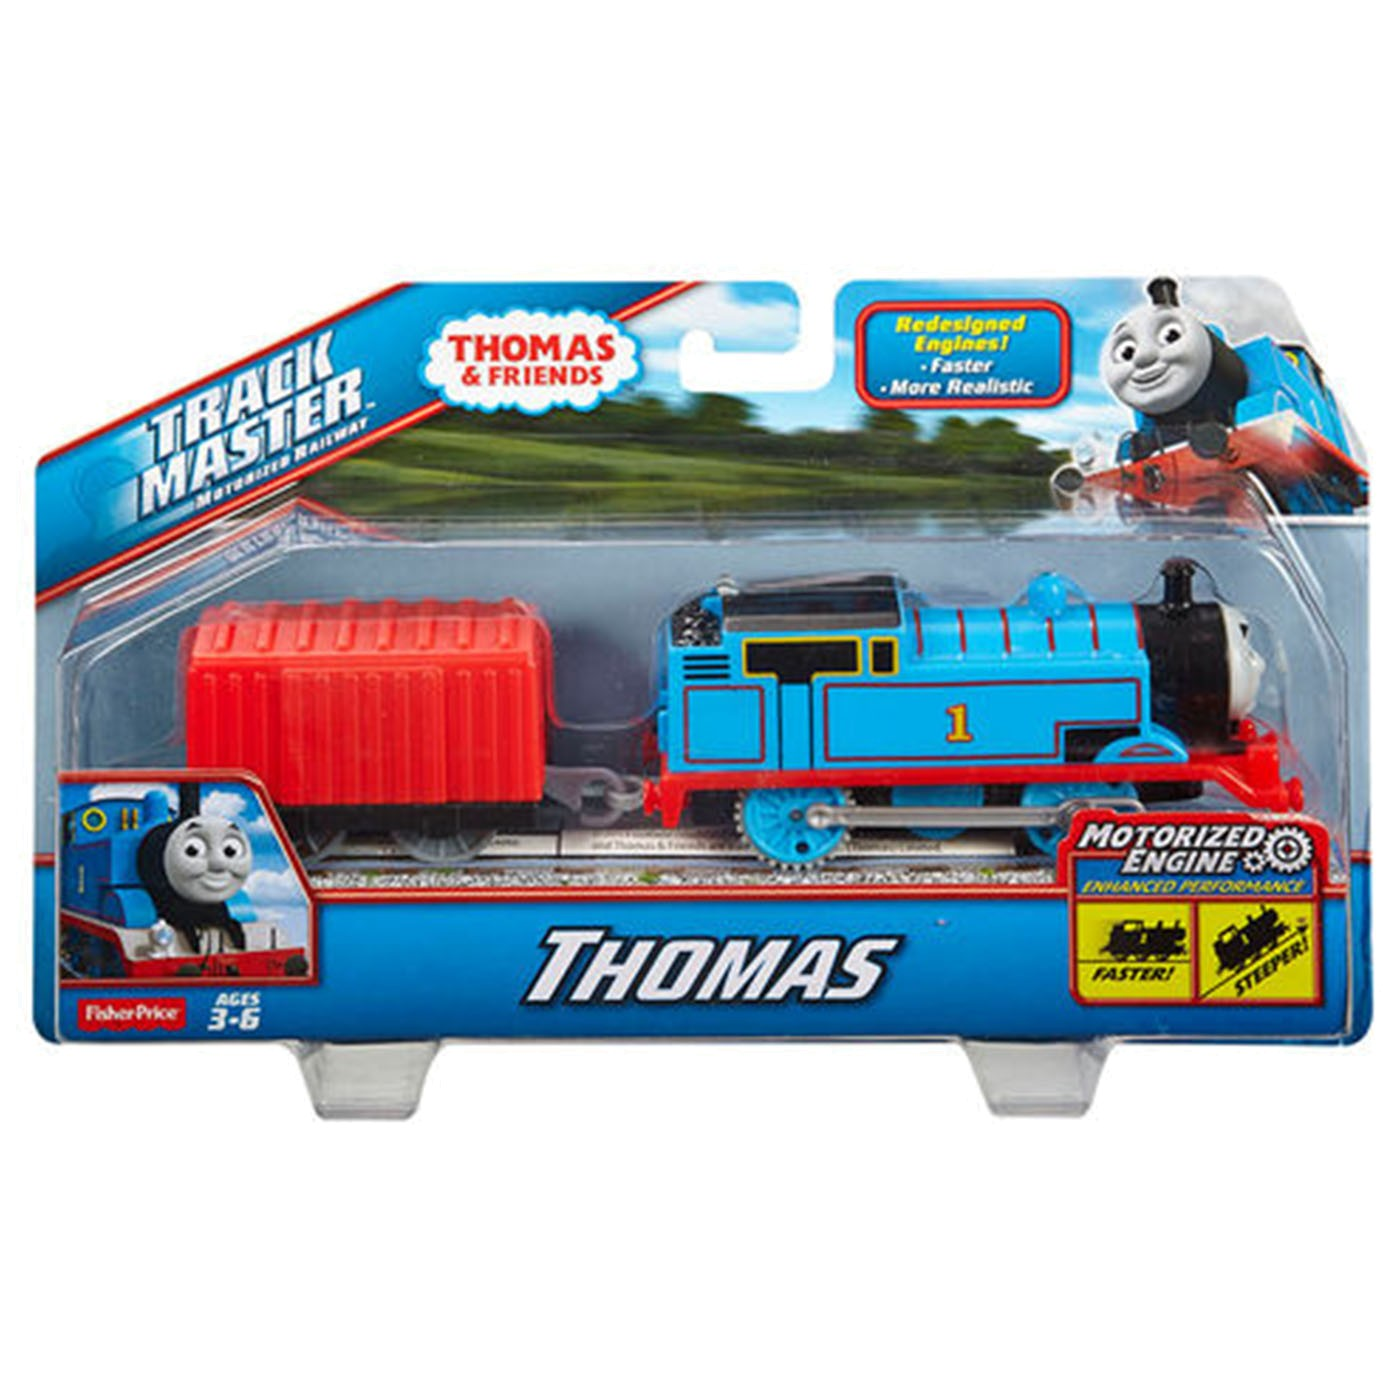 THOMAS BIG FRIENDS THOMAS